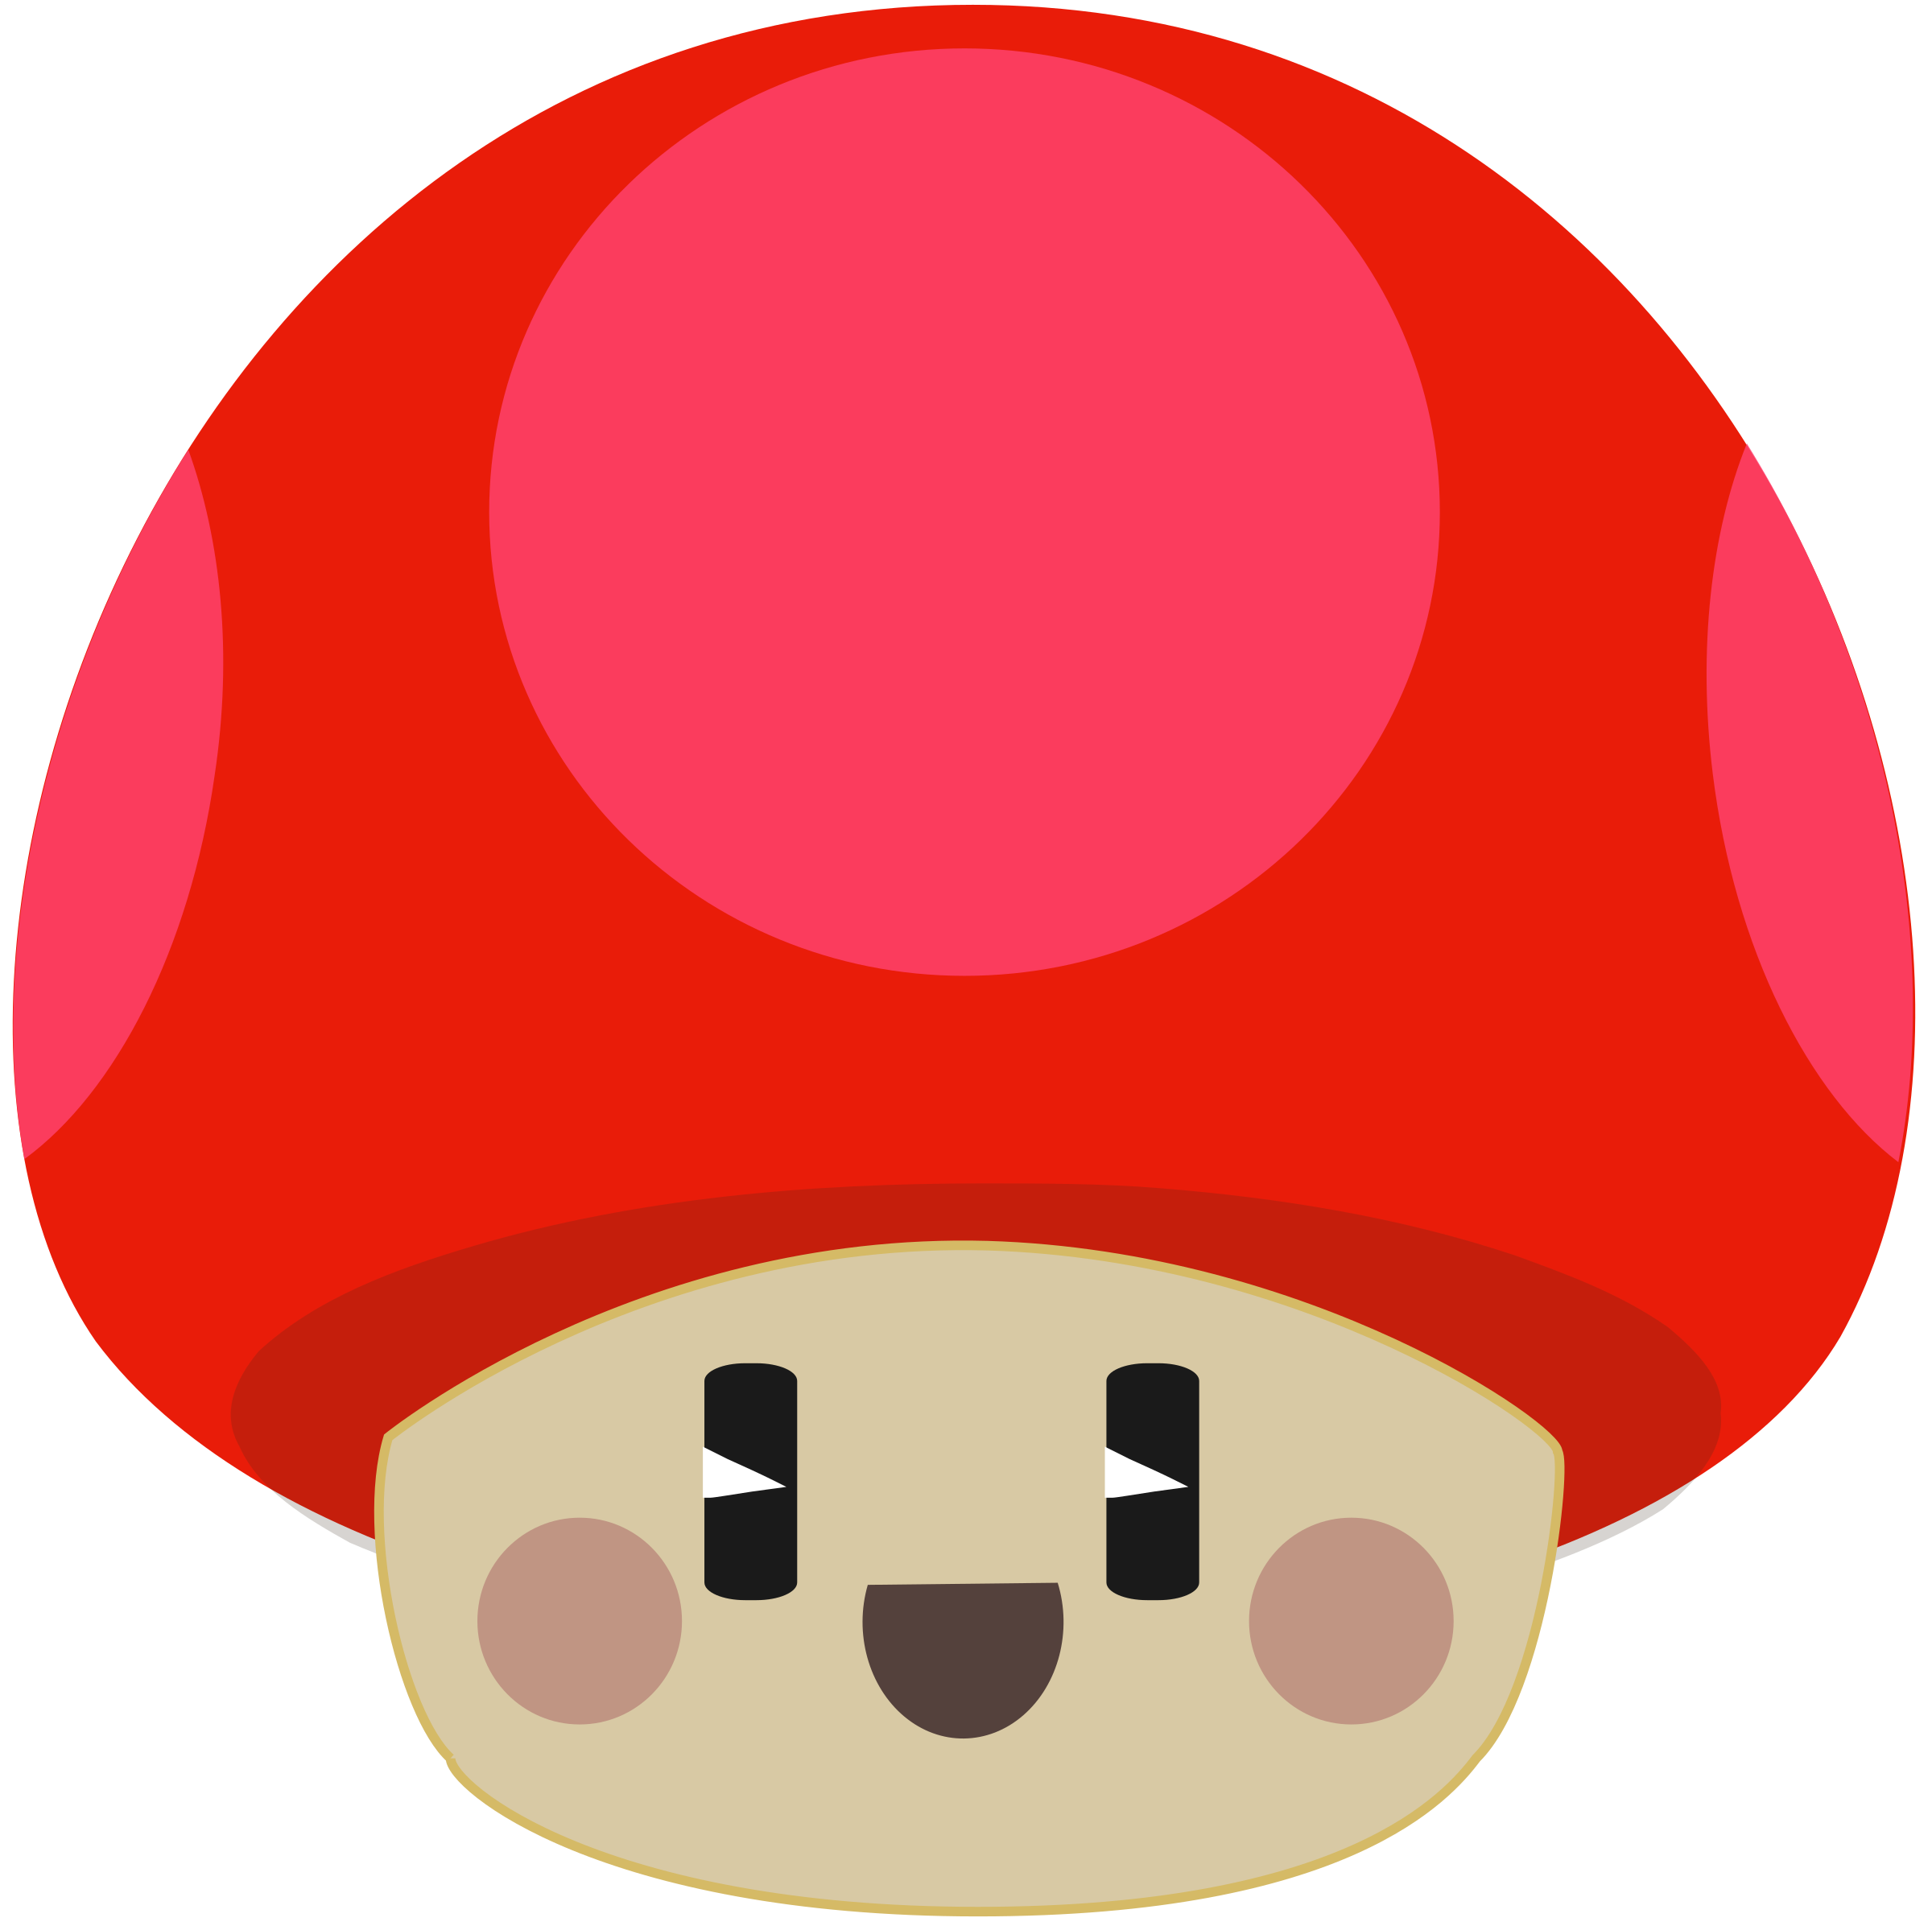 Cute happy mushroom by anarres